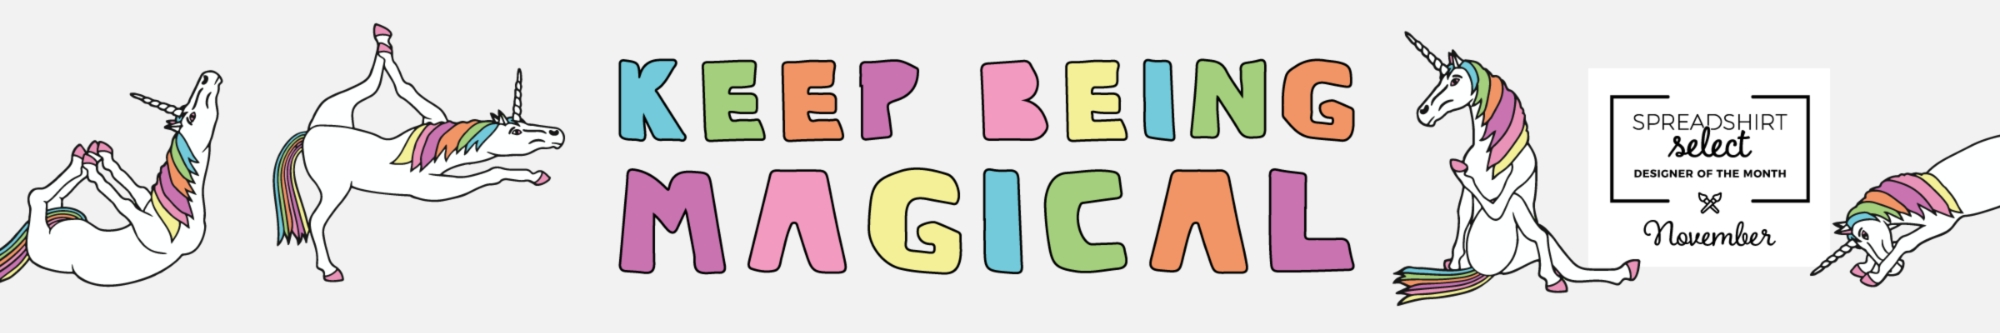 Showroom - Keep Being Magical